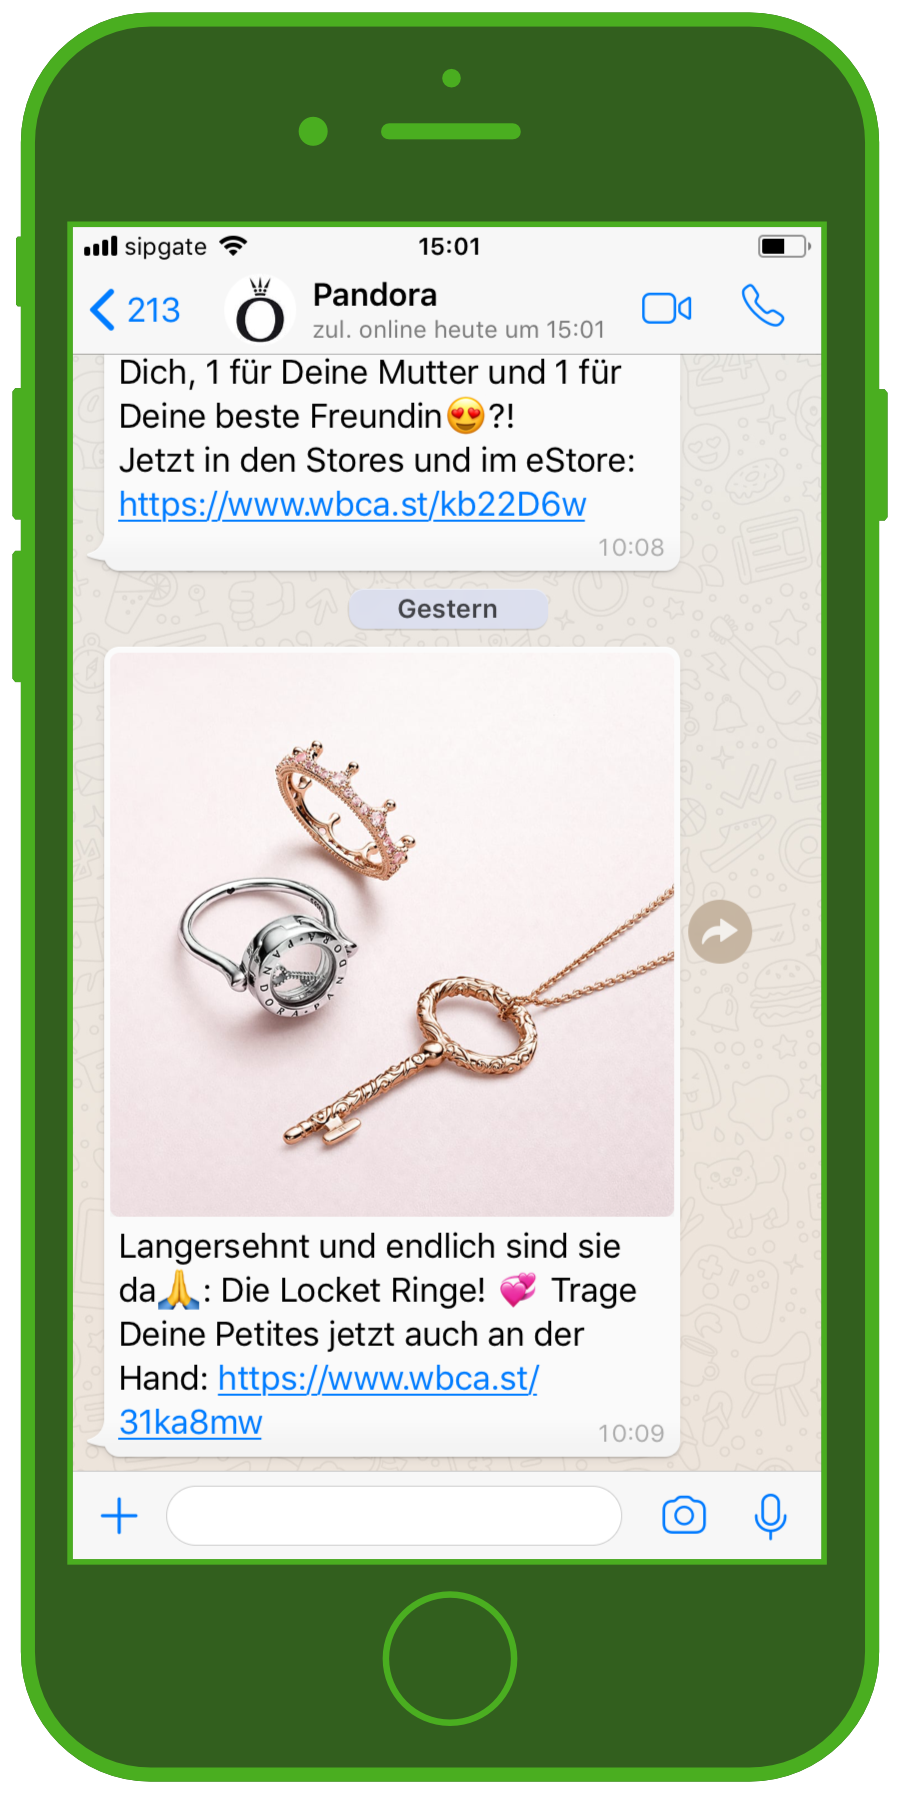 device-pandora-whatsapp-screenshot